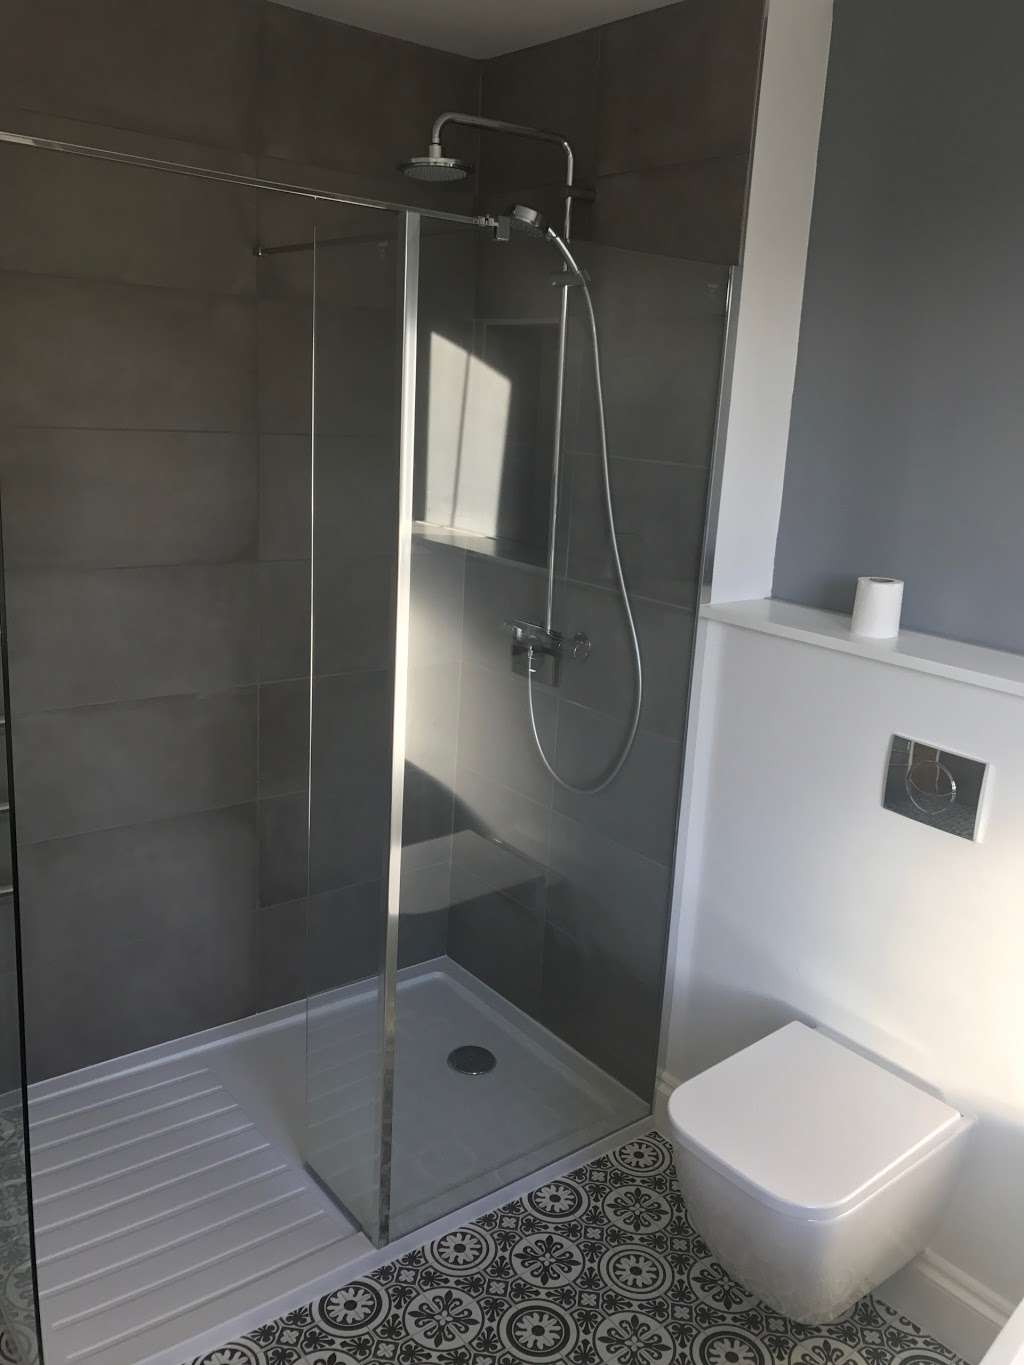 Easy You - plumber  | Photo 2 of 5 | Address: Holly lodge, Lodge lane, Redhill RH1 5DH, UK | Phone: 07736 764725